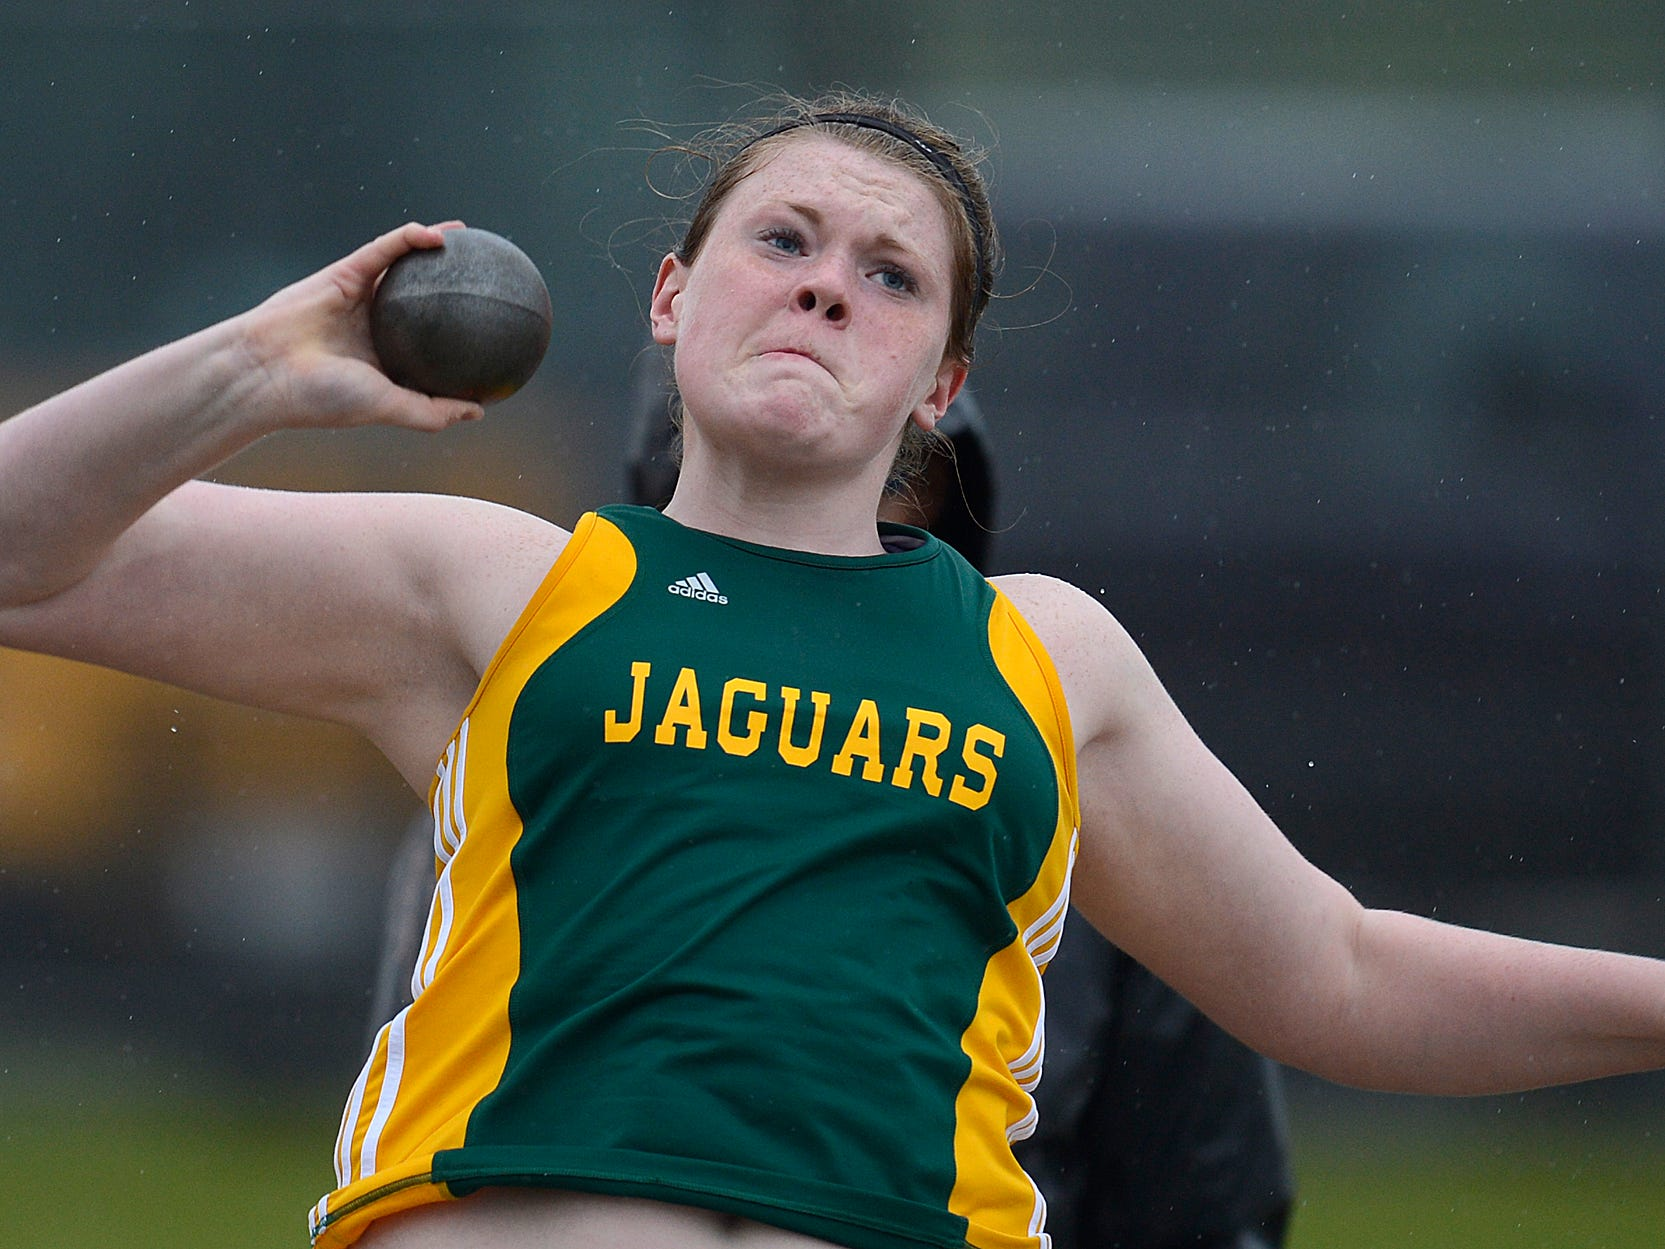 Ashwaubenon's Erin Dunning attempts a throw in the girls shot put during the WIAA Division 1 regional tack and field meet at Bay Port High School in Suamico on Tuesday.